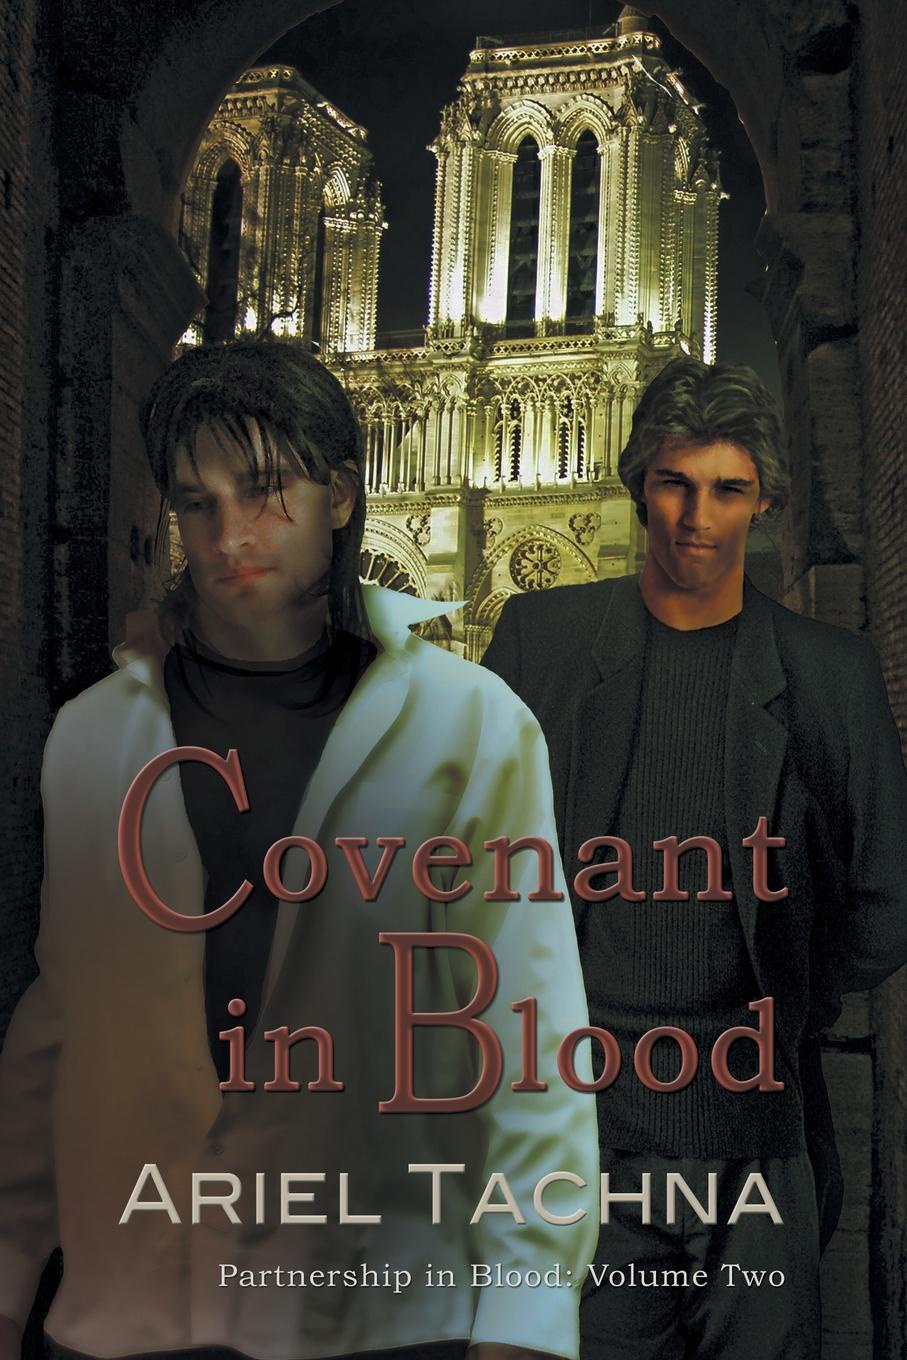 Ariel Tachna Covenant in Blood varney the vampire or the feast of blood one volume edition